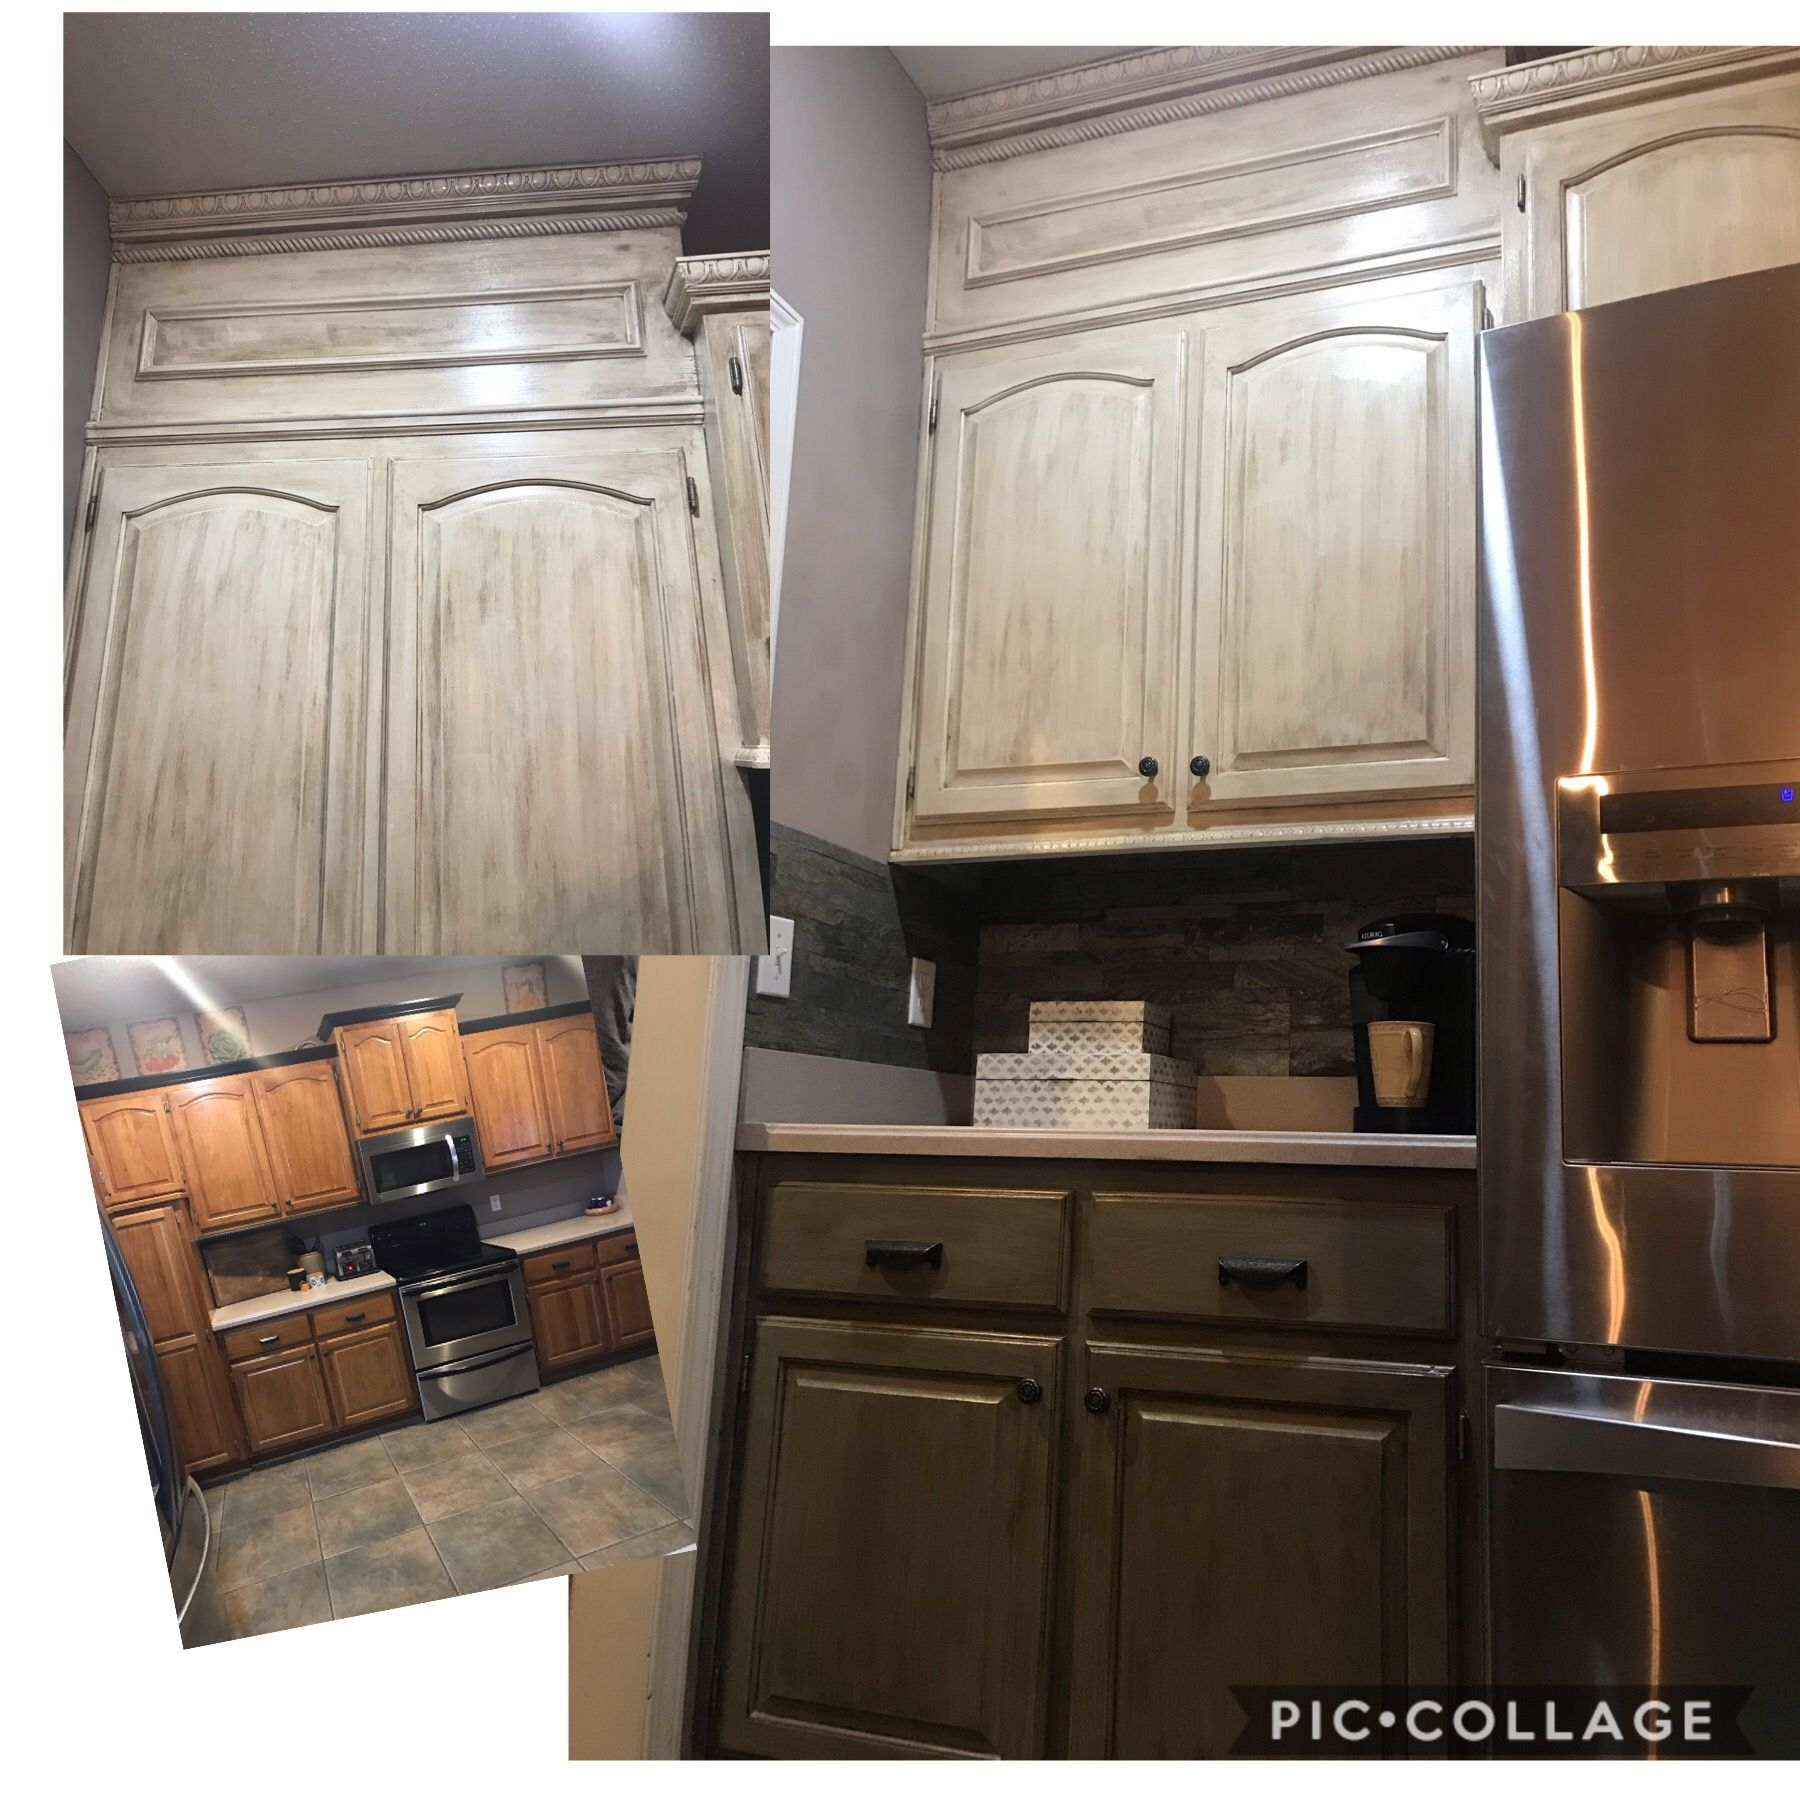 kitchen cabinets built to ceiling with added molding before and after kitchen cabinets on kitchen cabinets to the ceiling id=14398